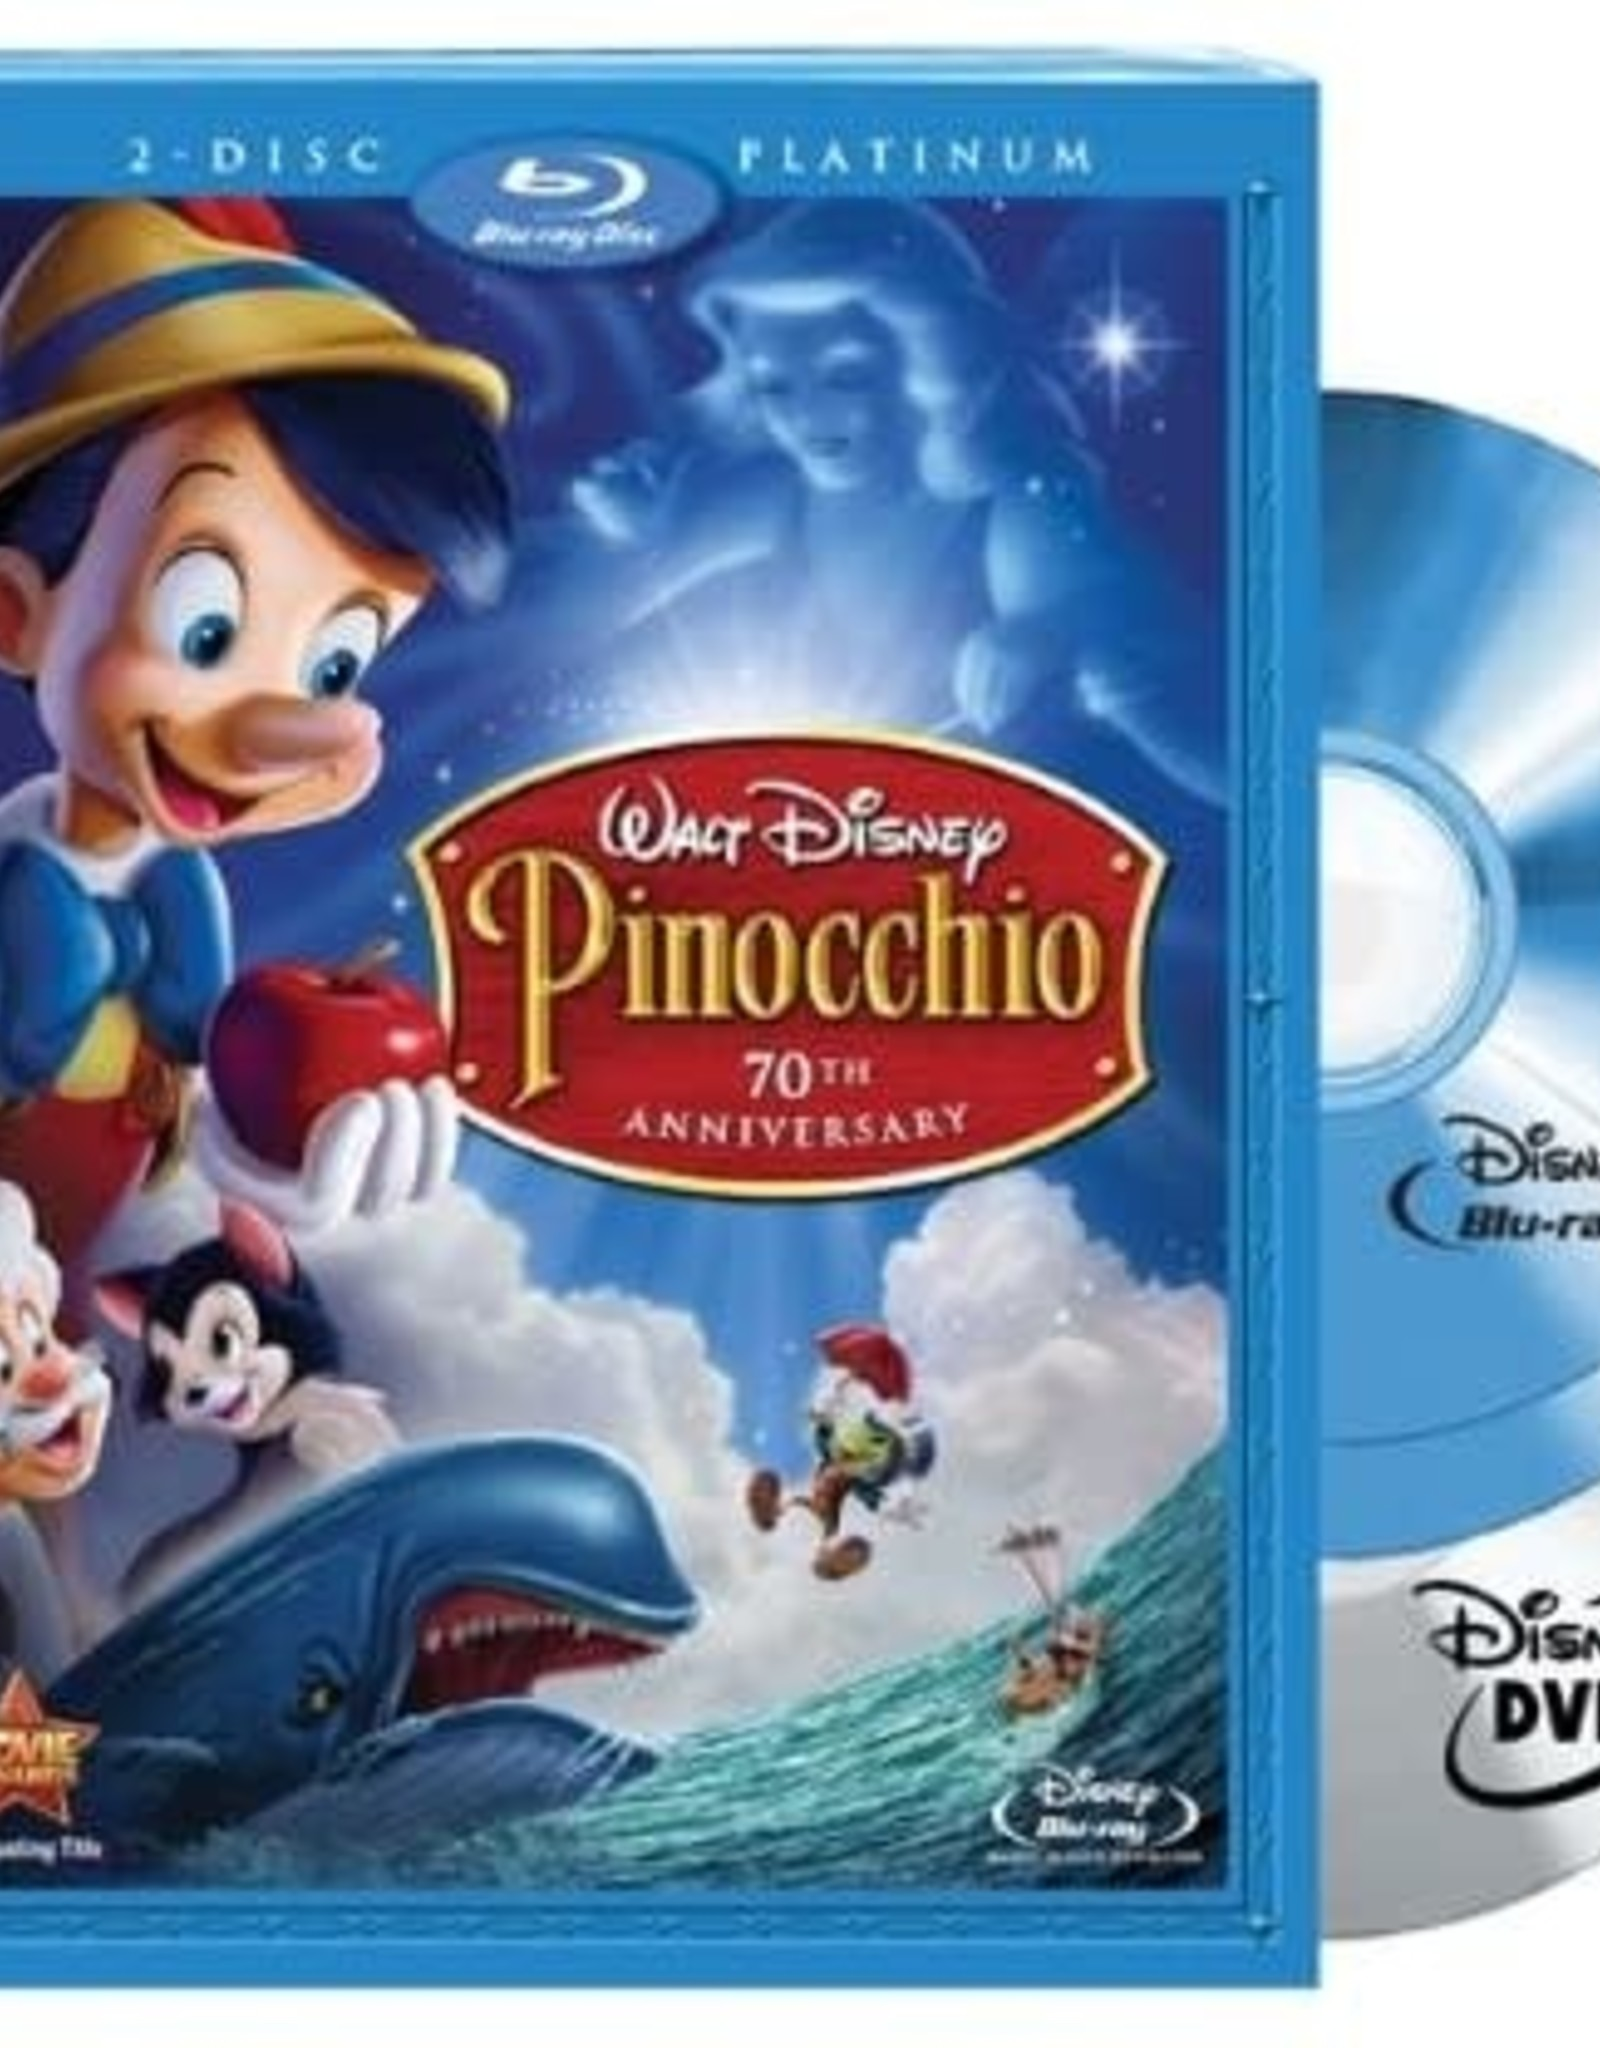 Disney Pinocchio Platinum Edition (Bluray Only, USED)